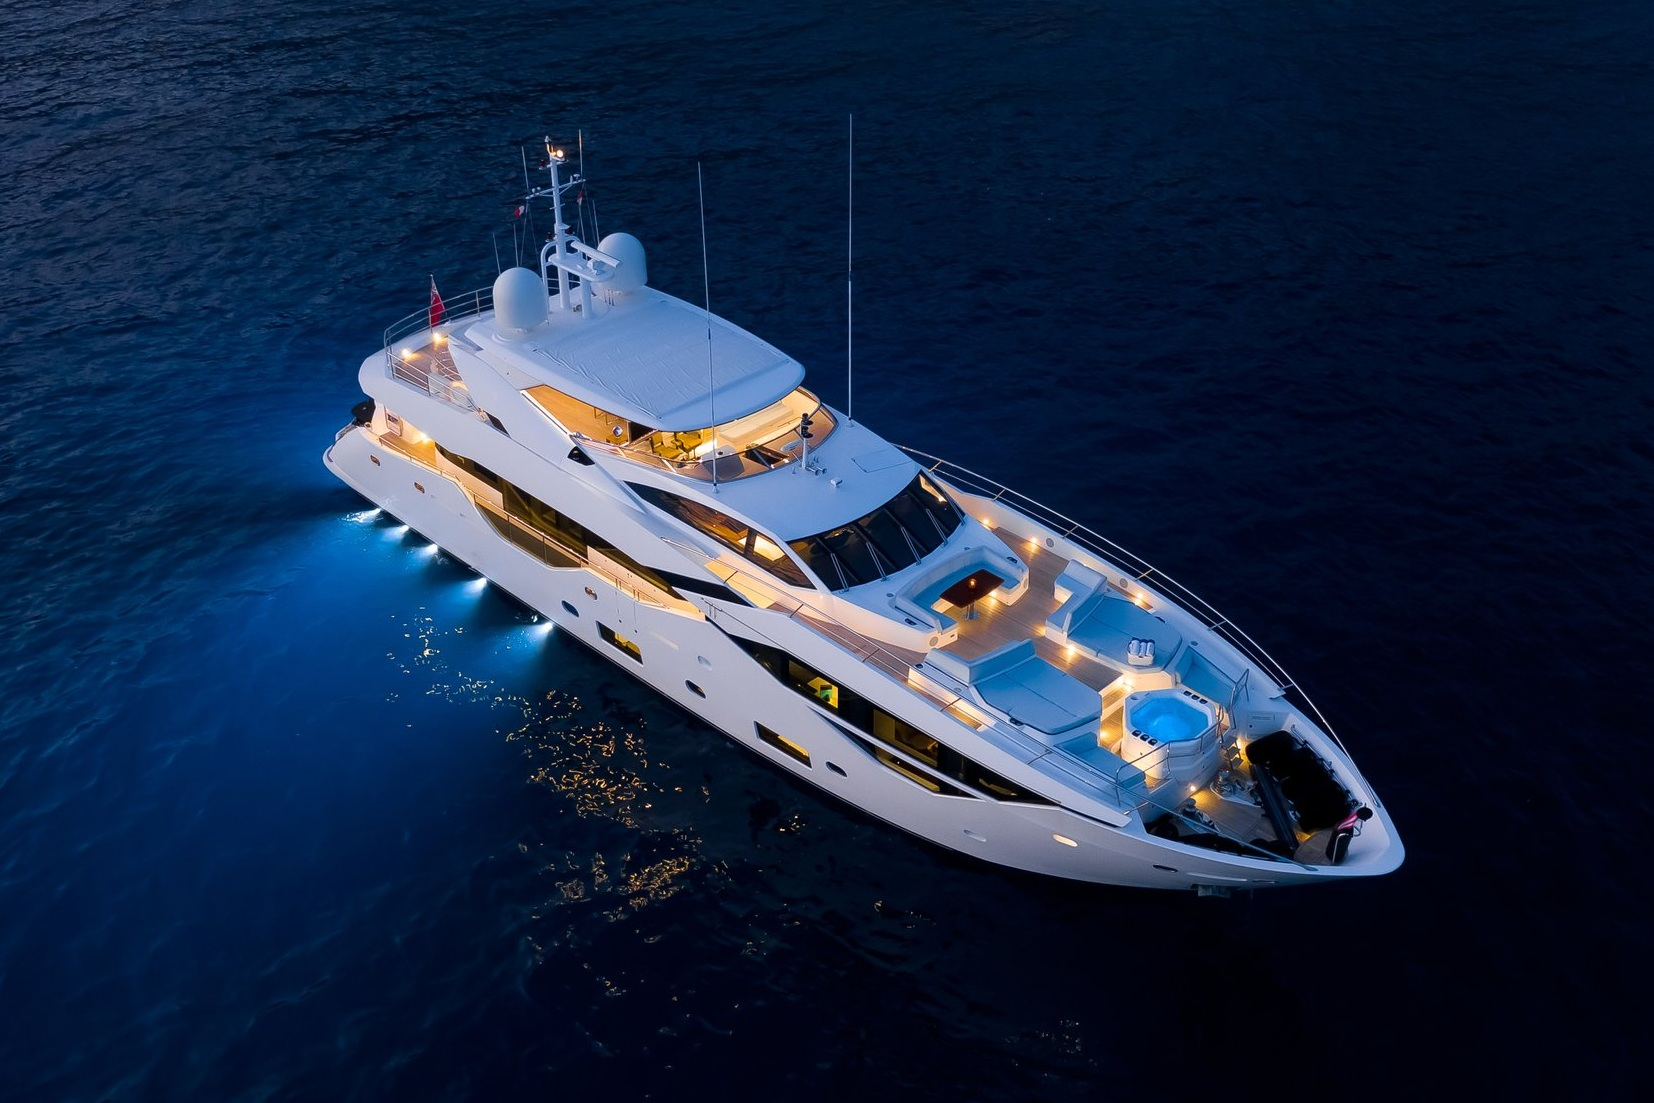 Best yacht brands and most expensive yachts of Russian billionaires